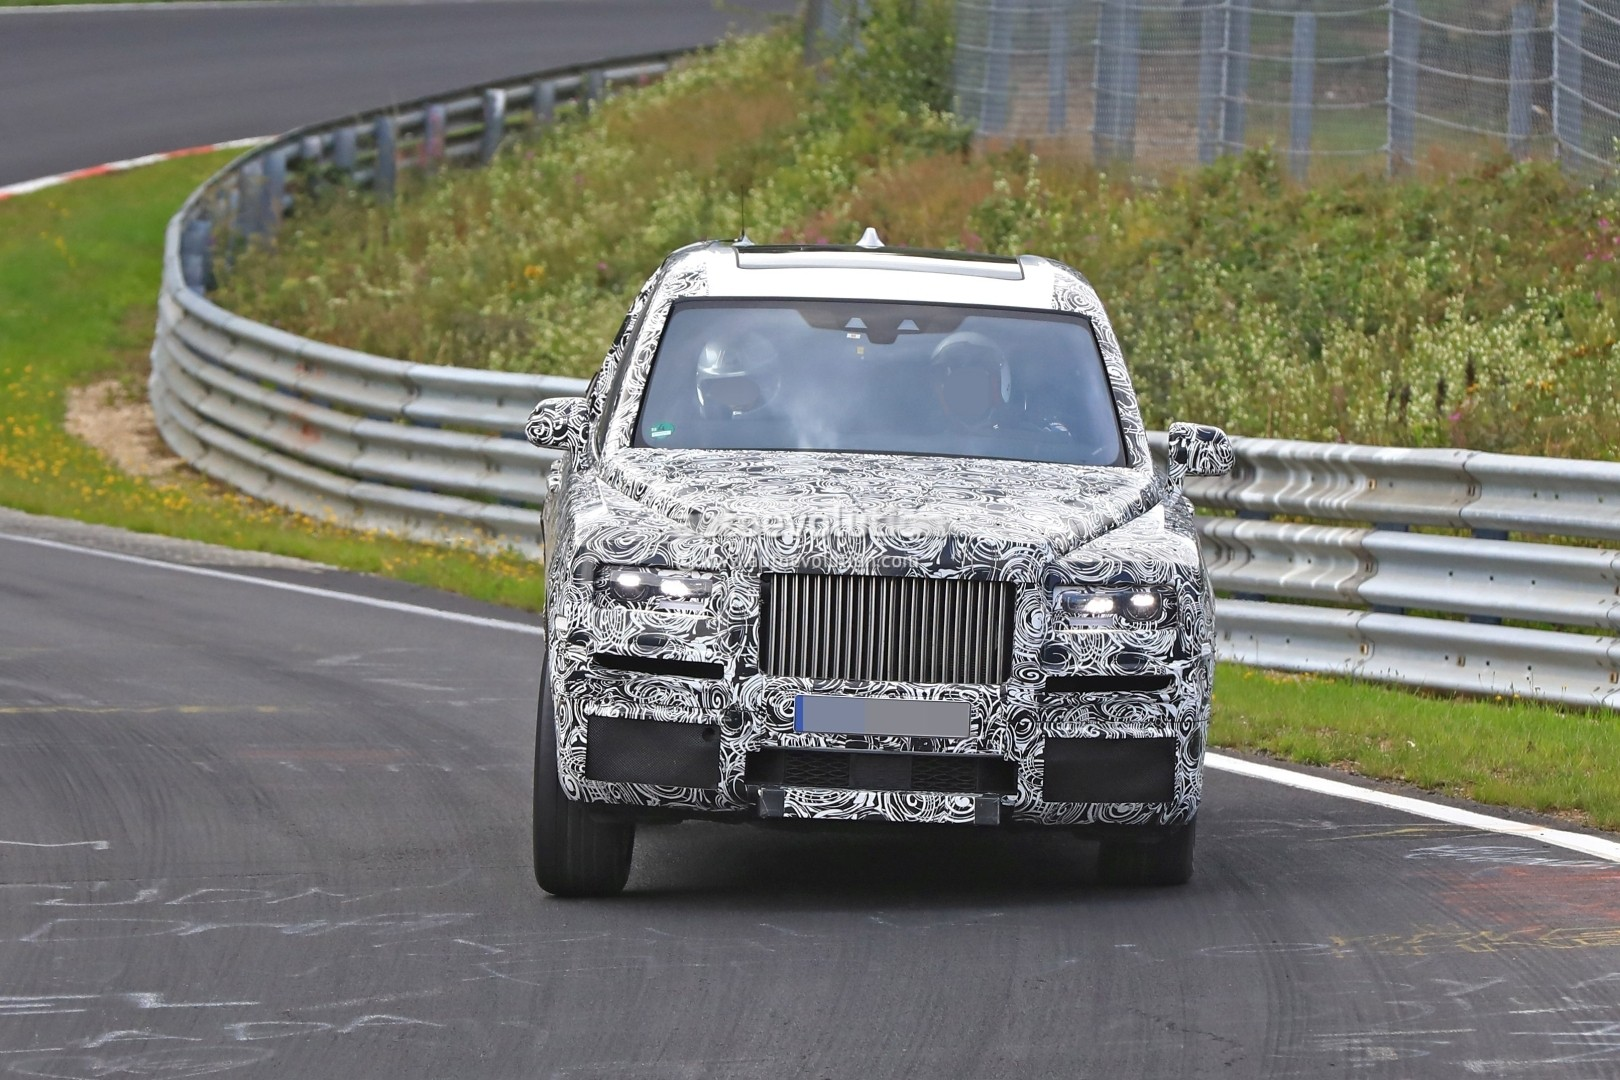 Rolls Royce Phantom unveiled